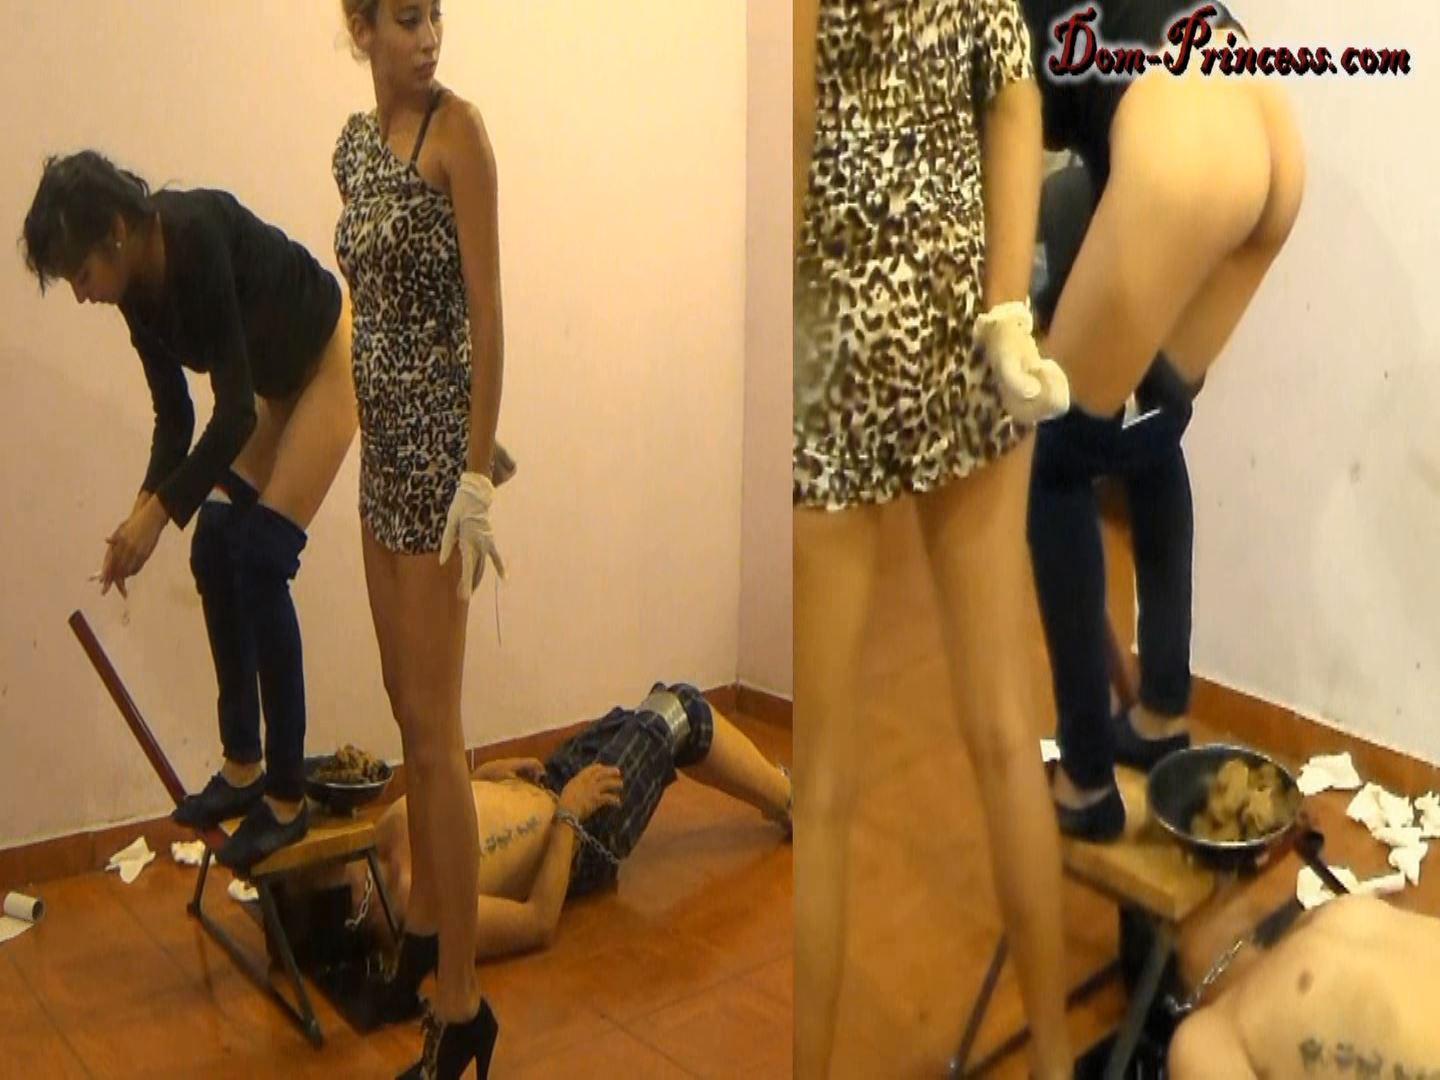 [DOM-PRINCESS] The Raw Tapes, braking a Man into a Humant Toilet. What went wrong Part 4 Samantha [FULL HD][1080p][WMV]